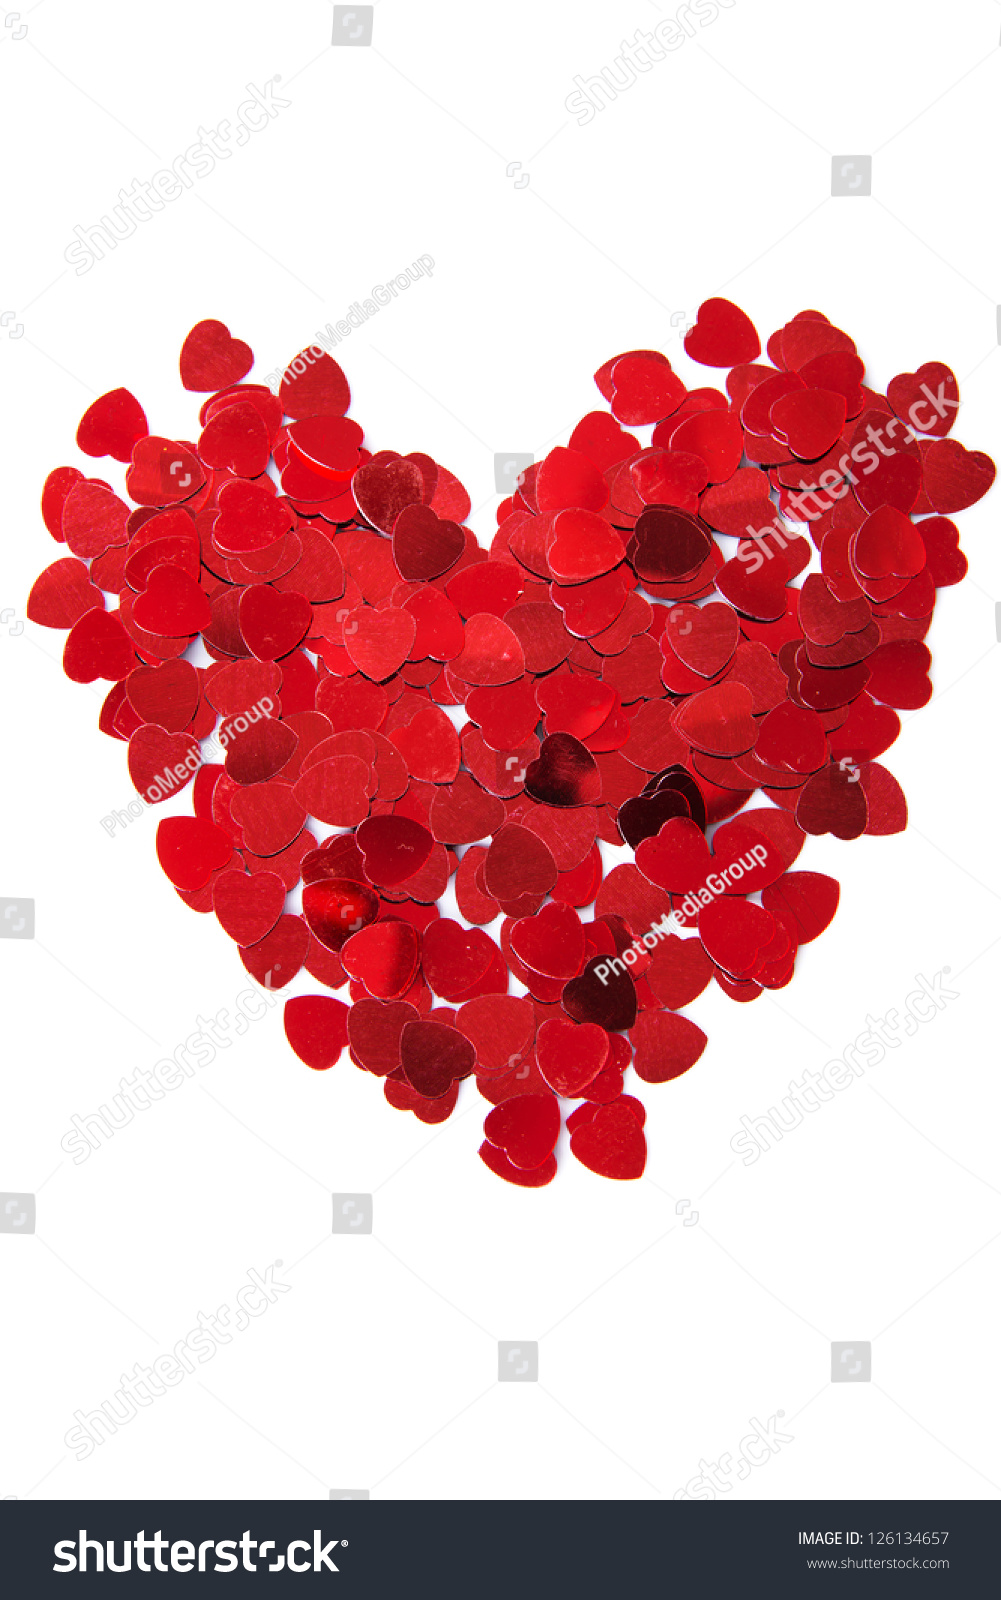 Red heart decoration stock photo shutterstock